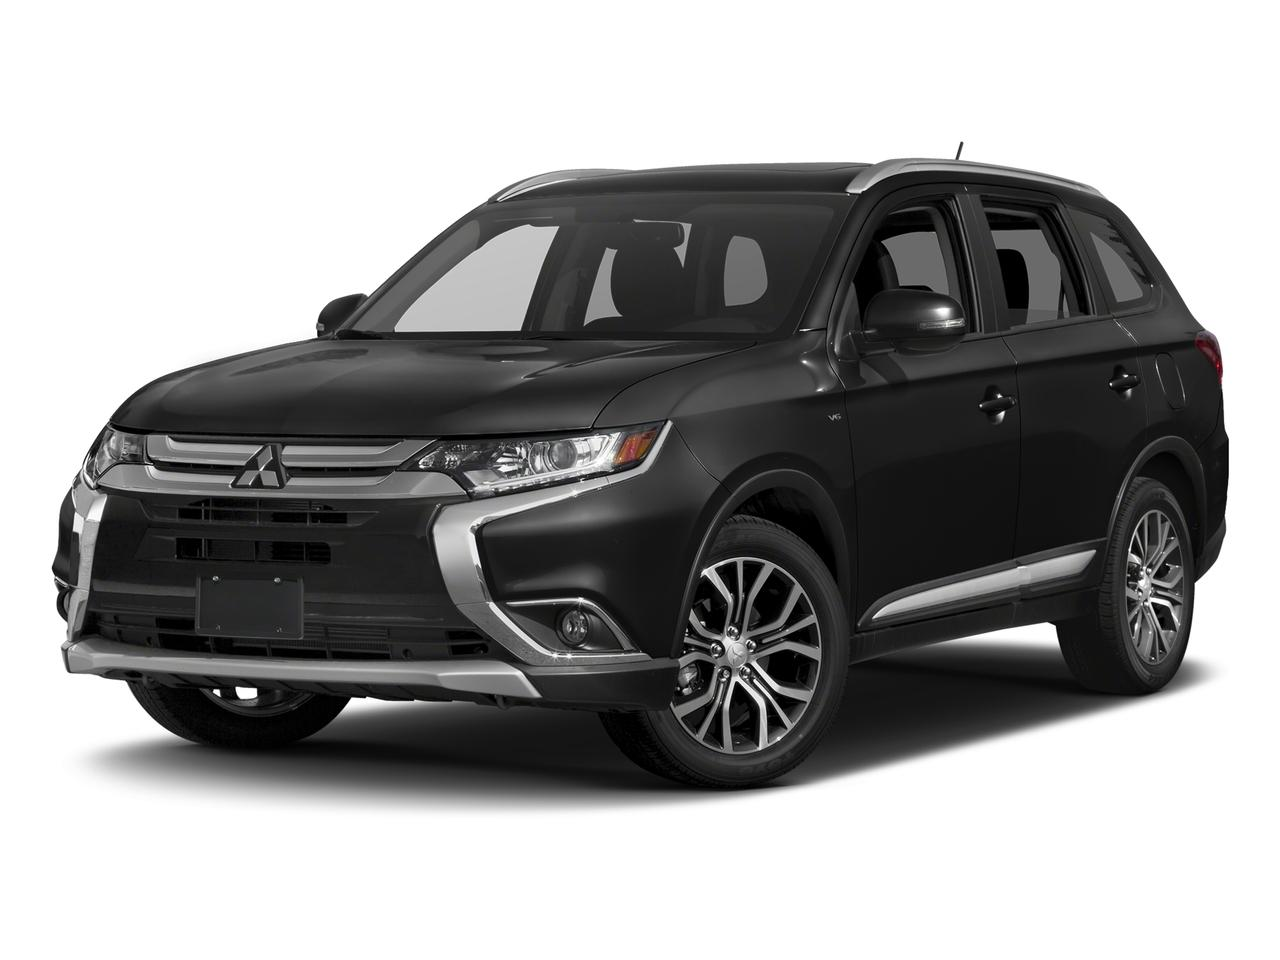 2017 Mitsubishi Outlander Vehicle Photo in Willoughby Hills, OH 44092